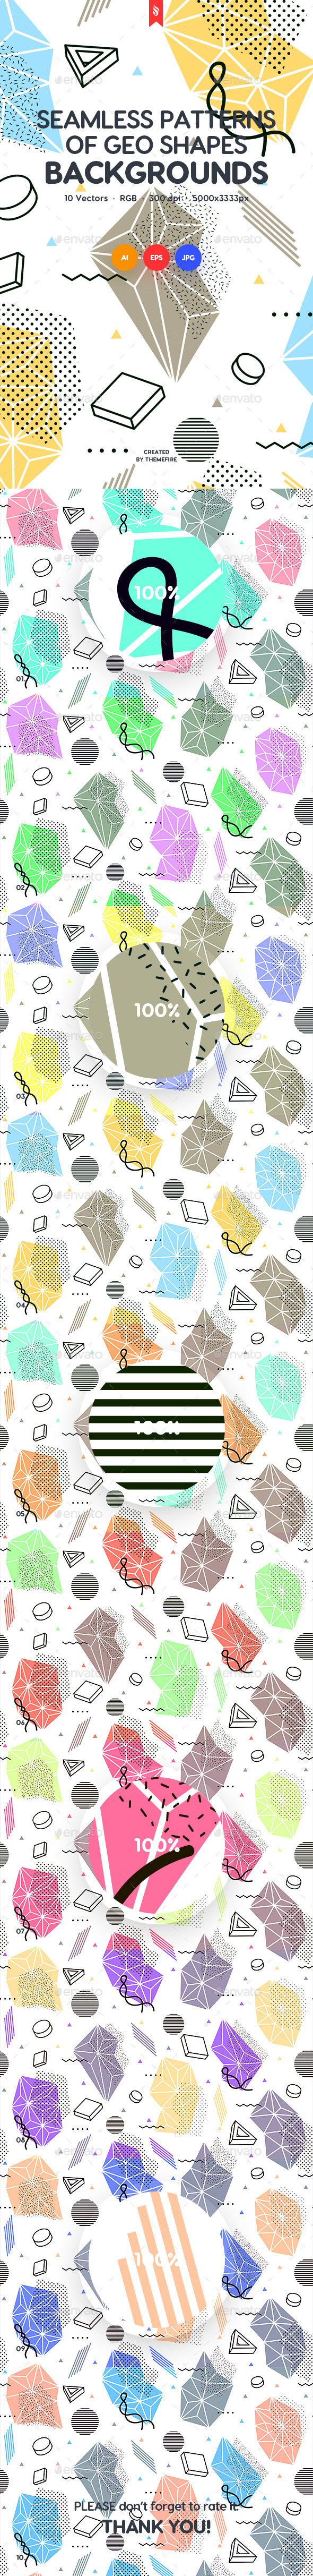 Seamless Patterns of Abstract Geo Shapes Backgrounds - Backgrounds Graphics